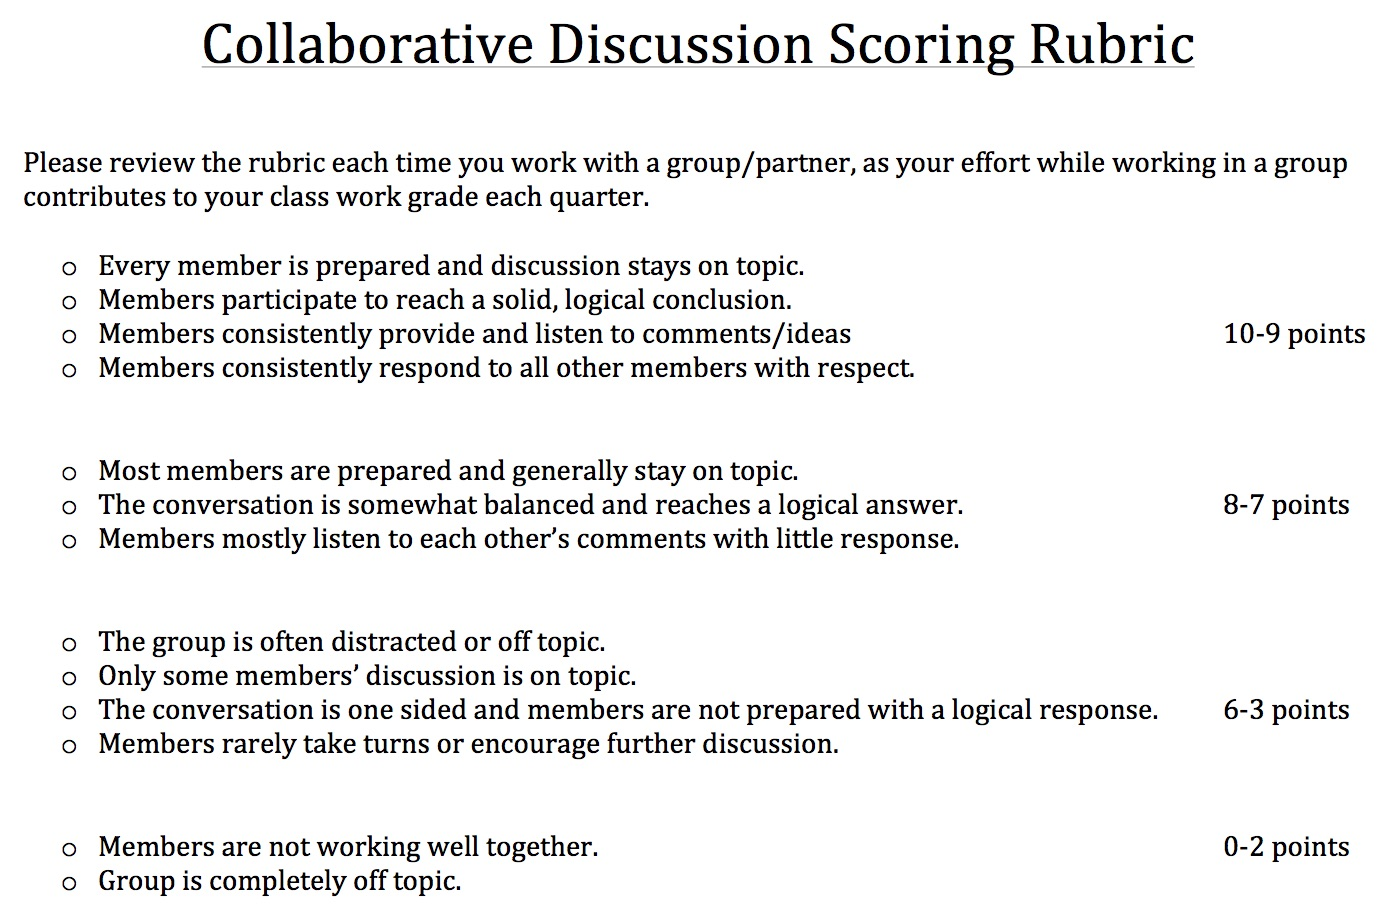 Collaborative Discussion Scoring Rubric